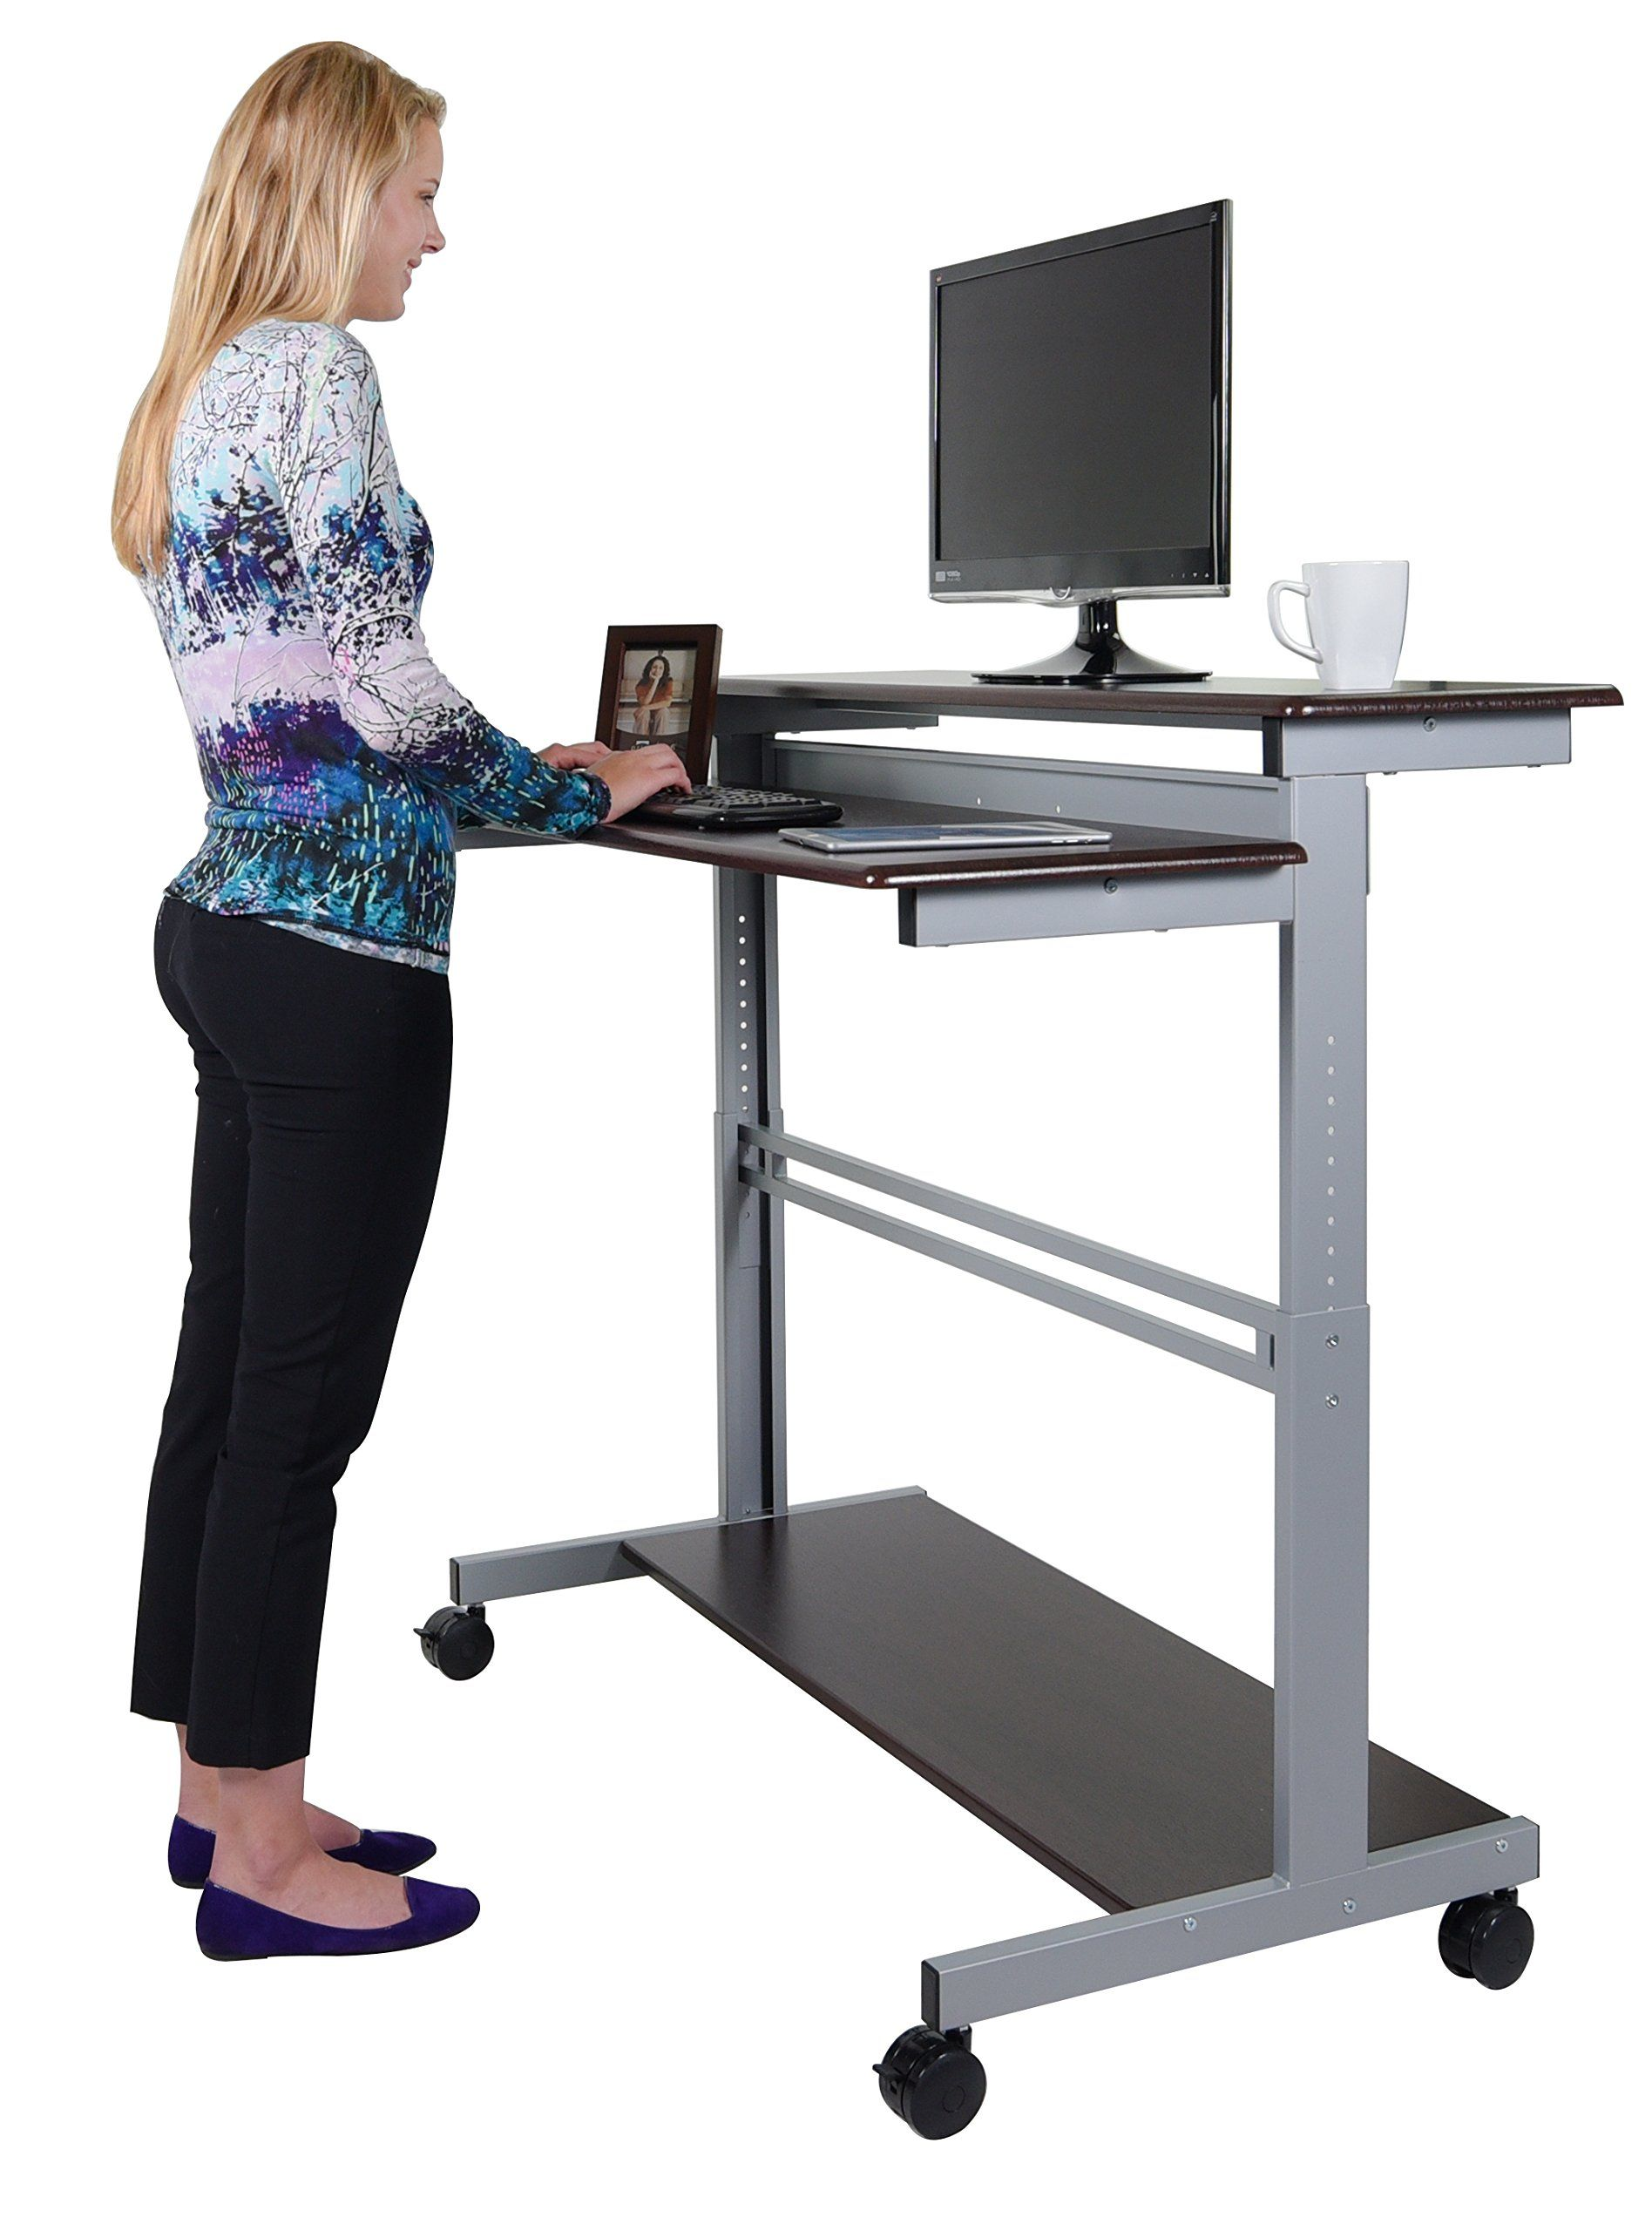 48 shelves mobile ergonomic stand up desk computer workstation dark walnut shelves silver frame